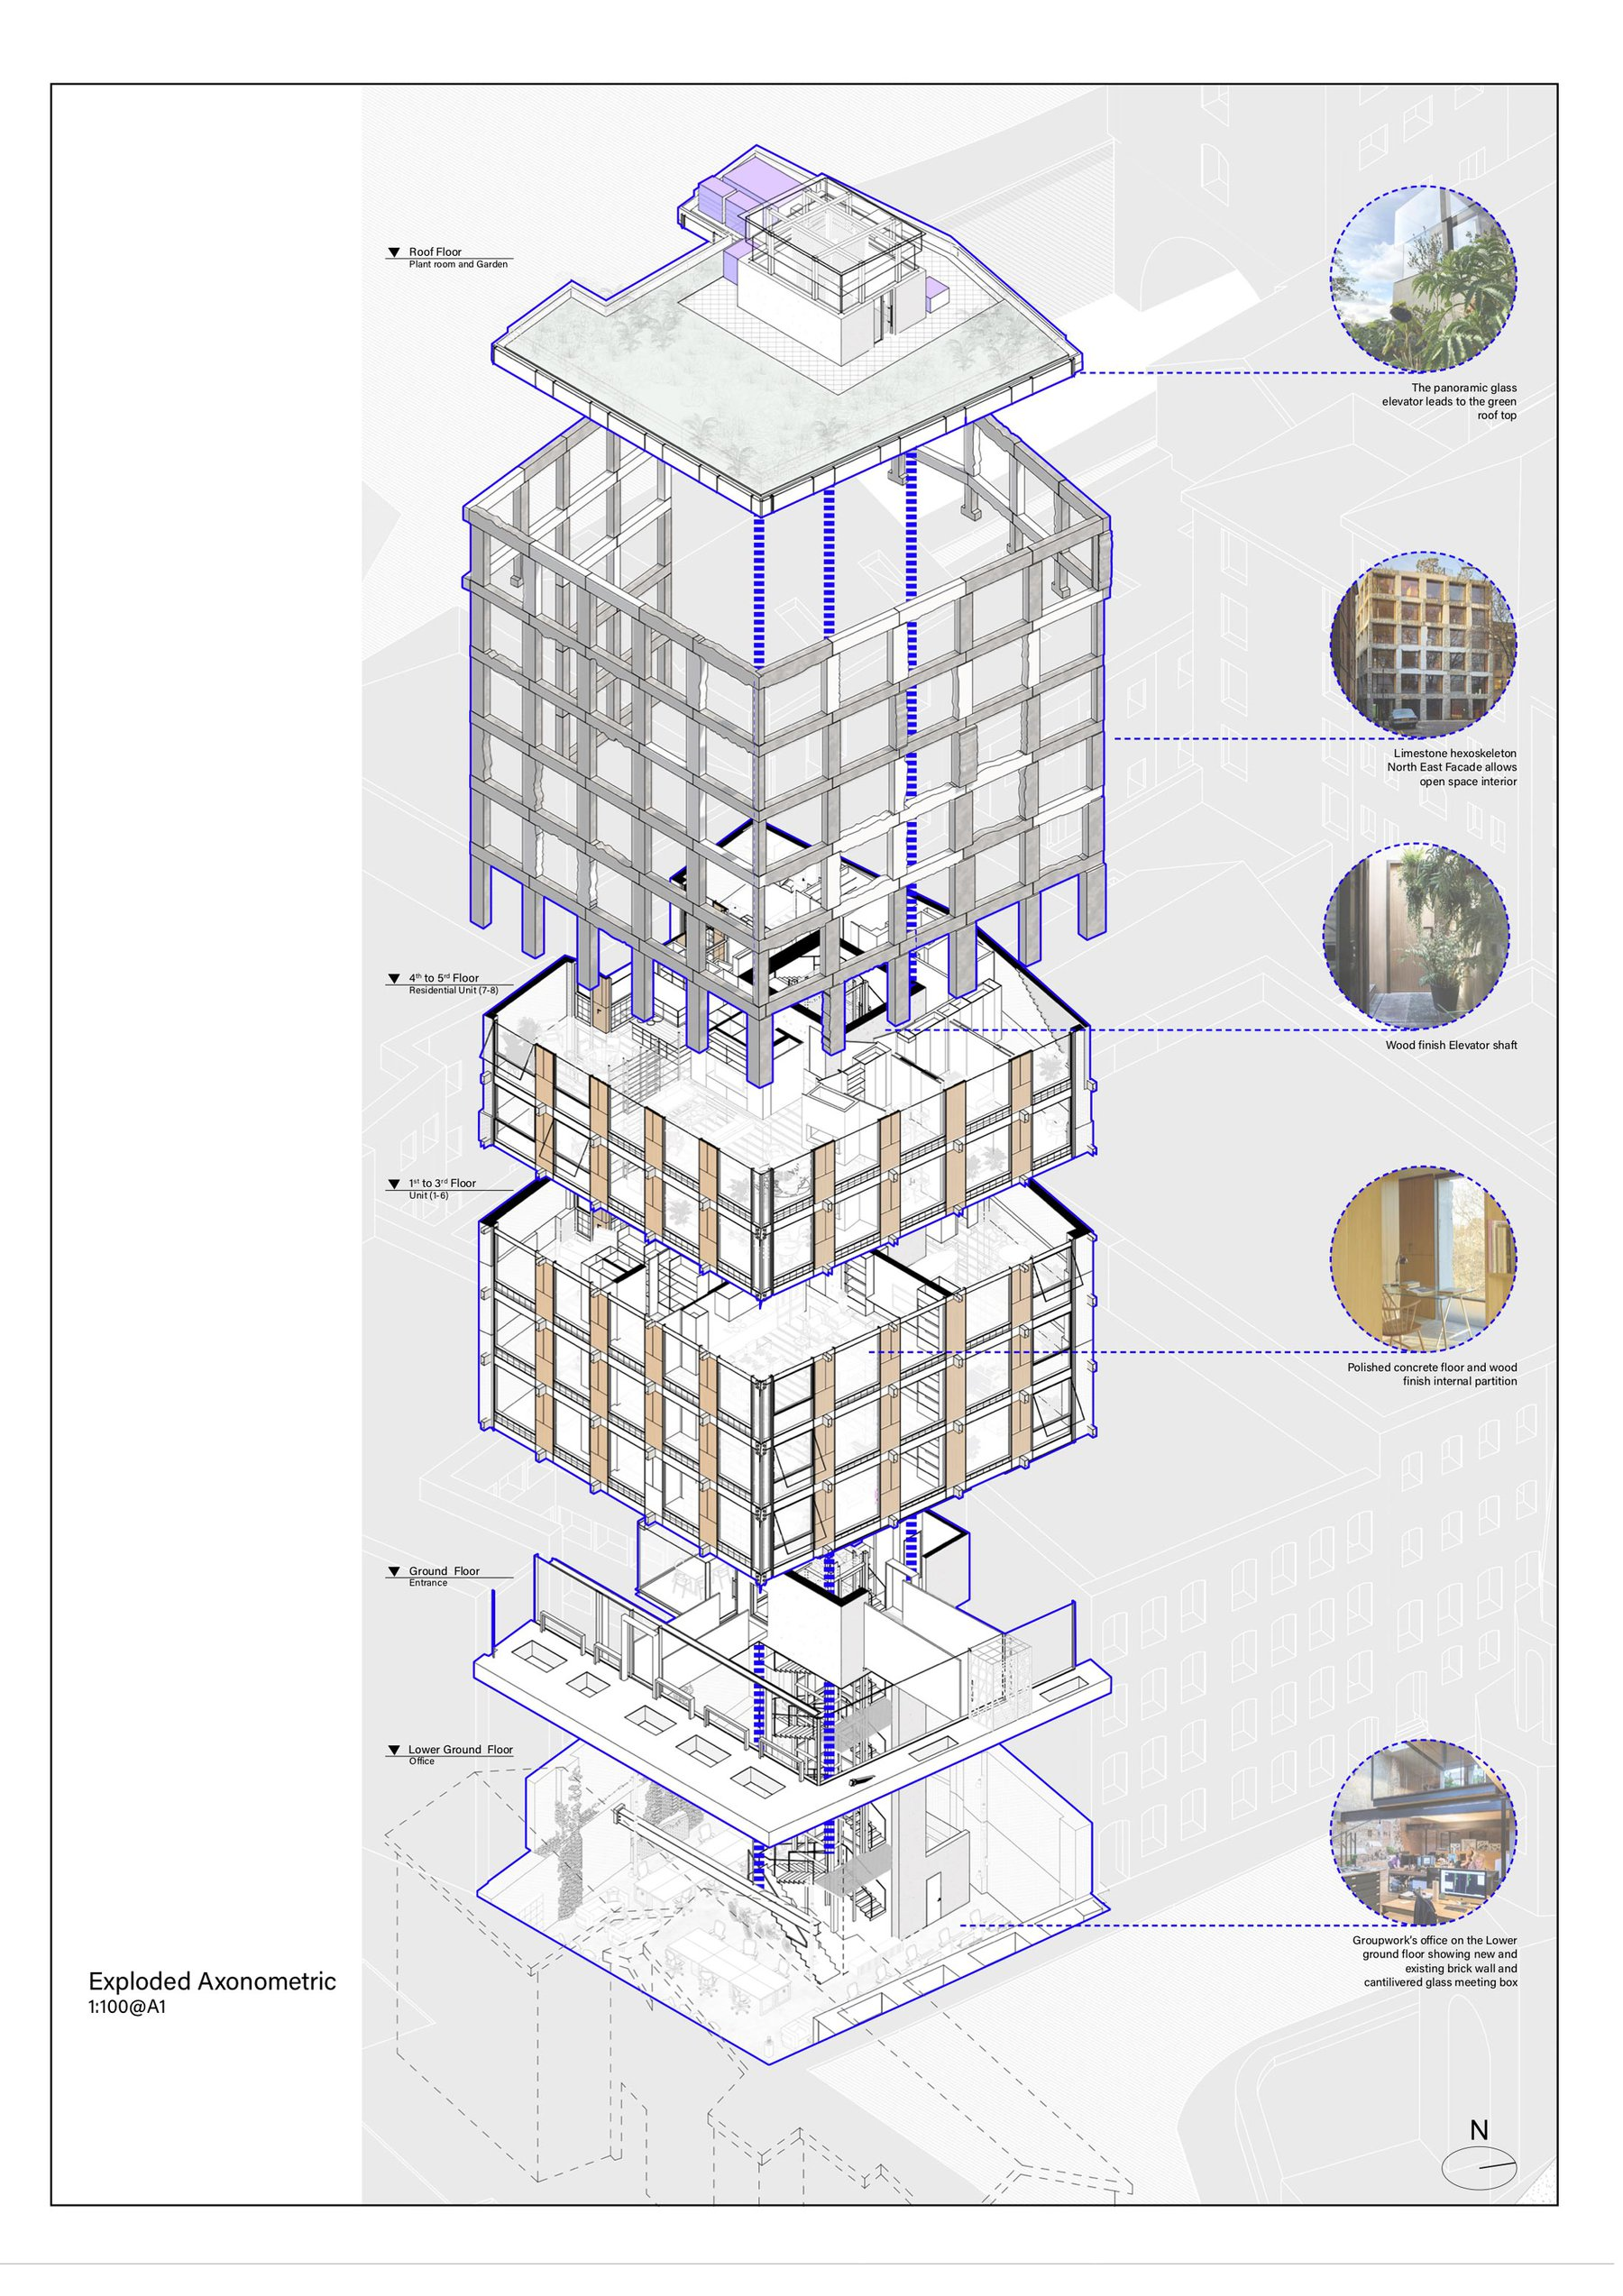 Ian-Bugarin_Annotated_Drawings_15-Clerkenwell-Place_Exploded-Axonometric.jpg